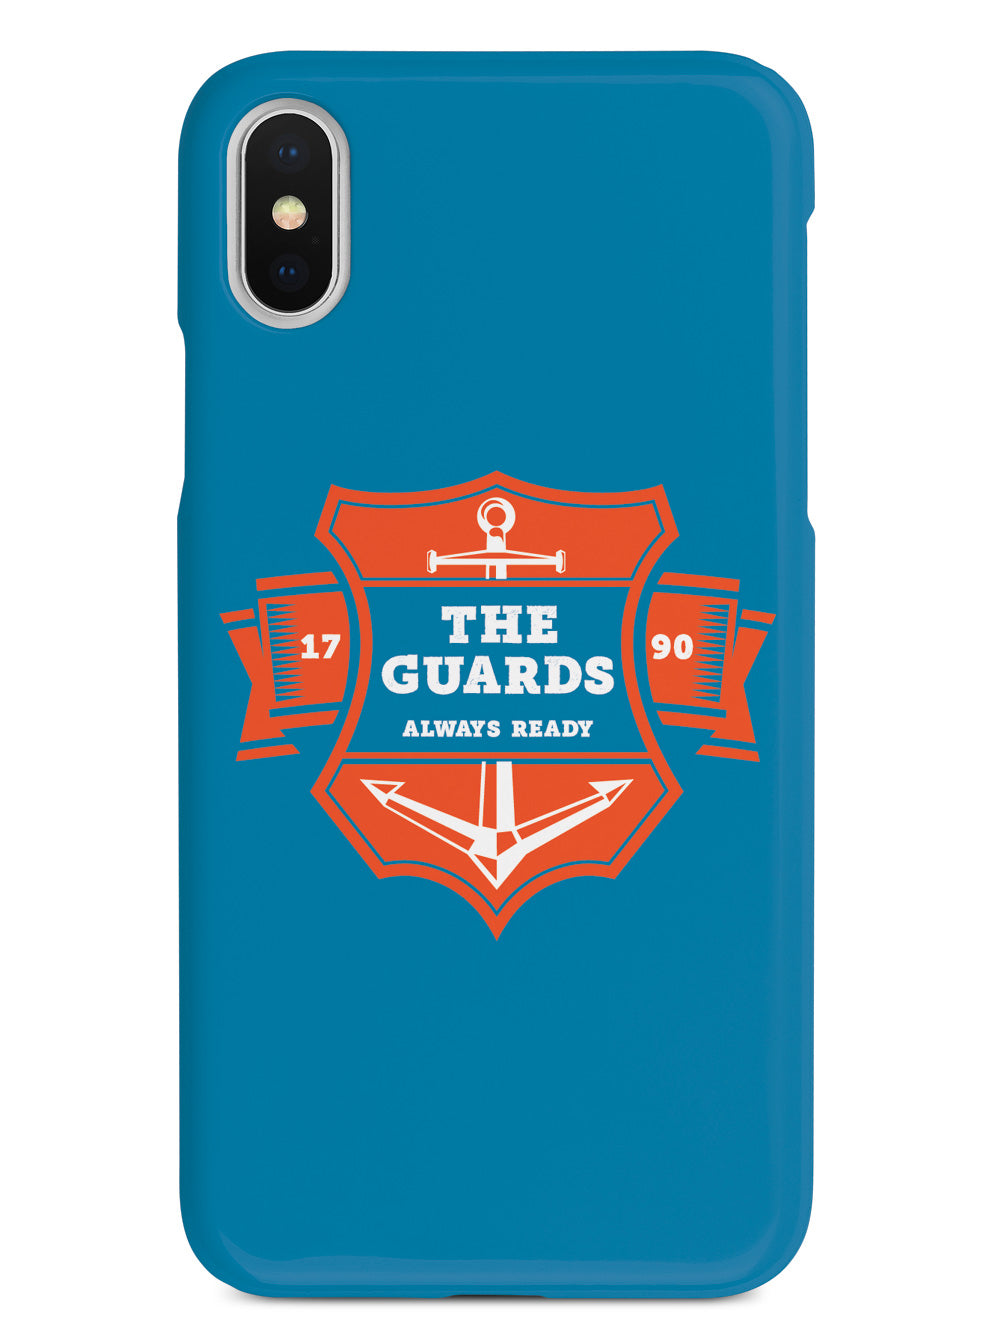 The Guards - US Coast Guard Case